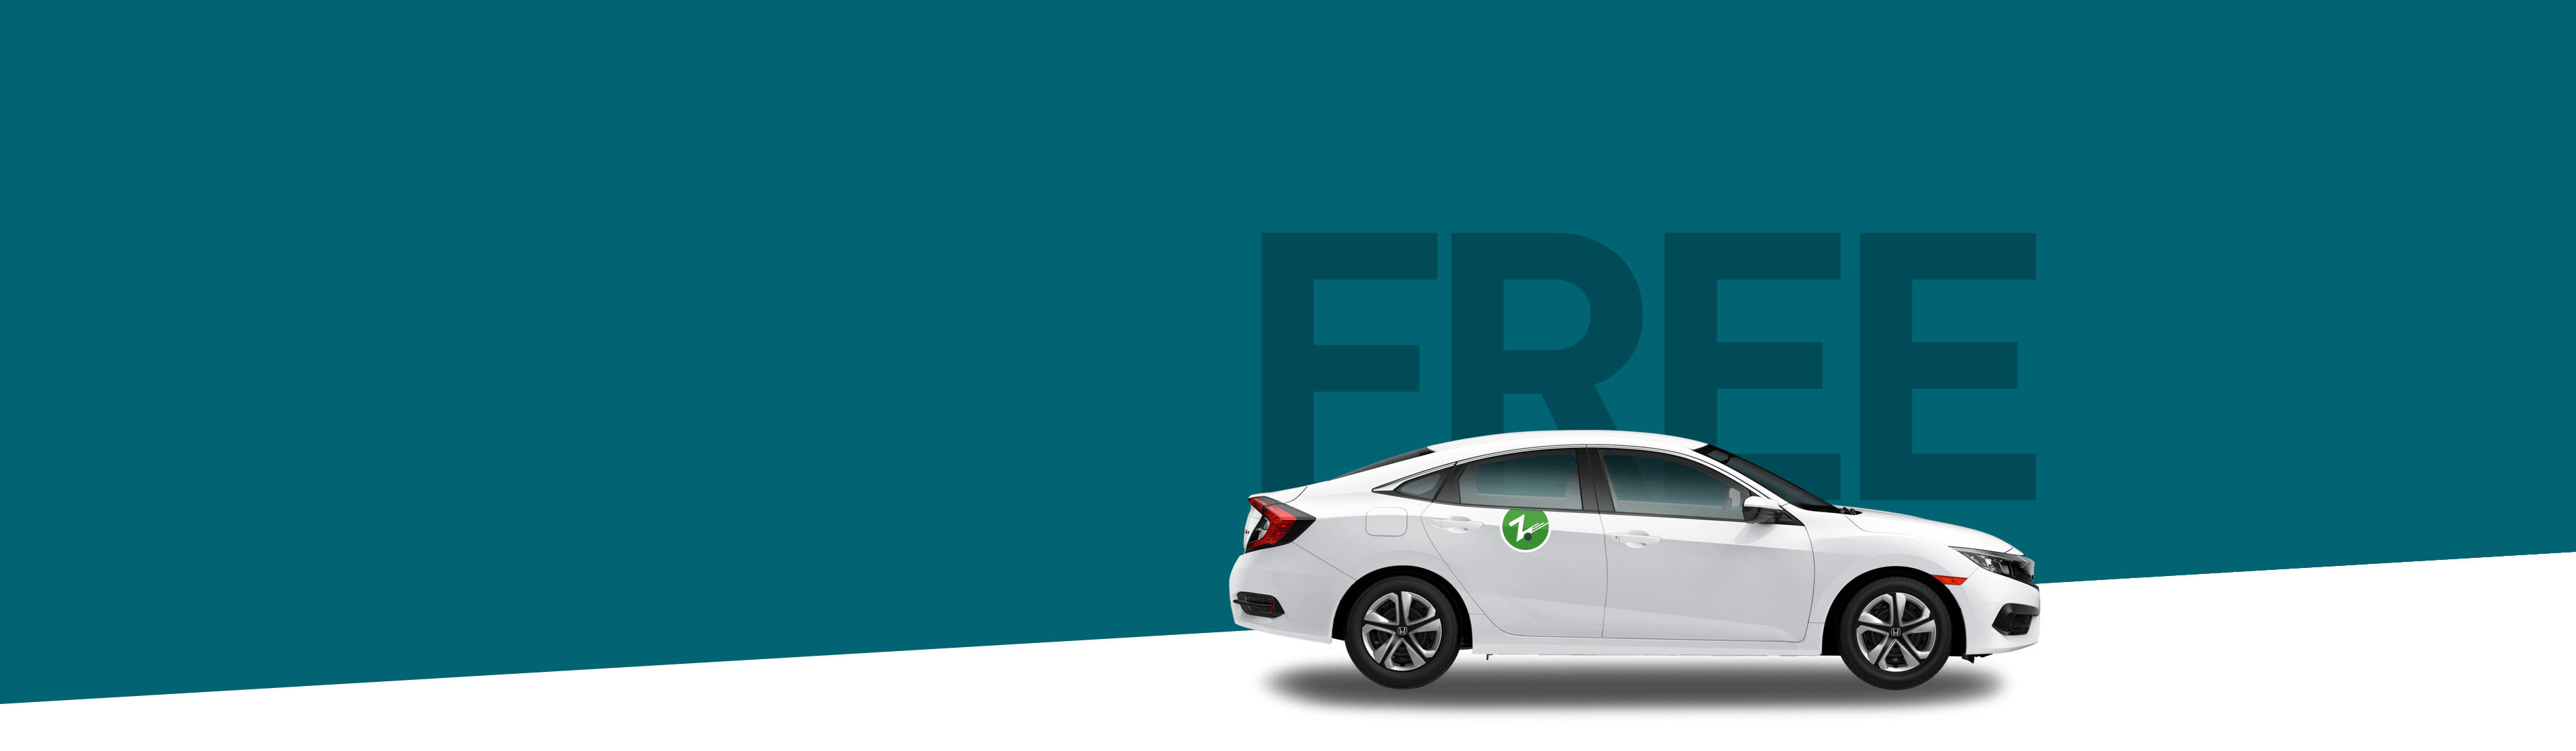 white Zipcar on dark colored background with the word Free